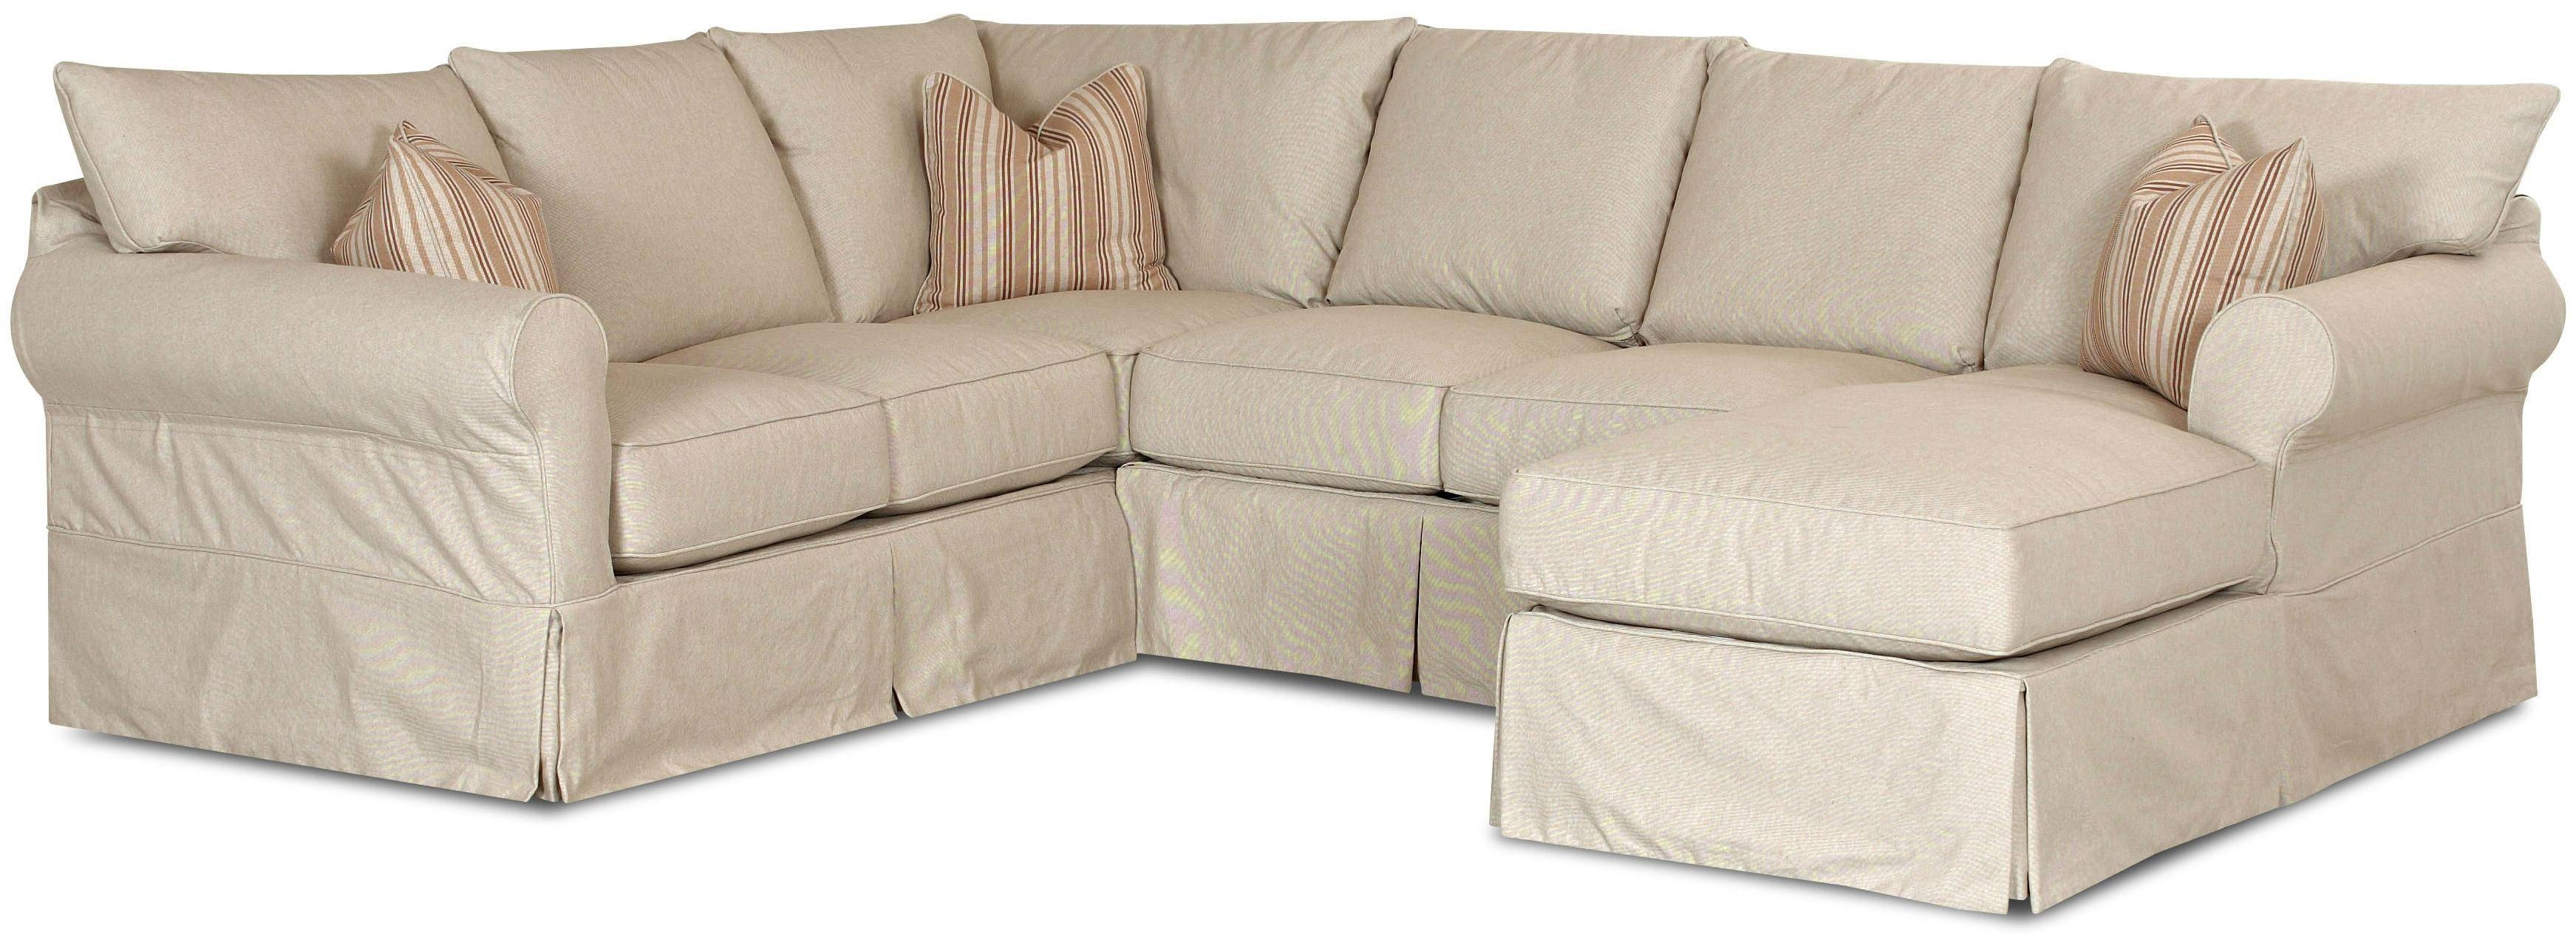 Furniture: Slip Covers For Sectional Couches | Couch Slip Covers with Sofas Cover For Sectional Sofas (Image 6 of 15)